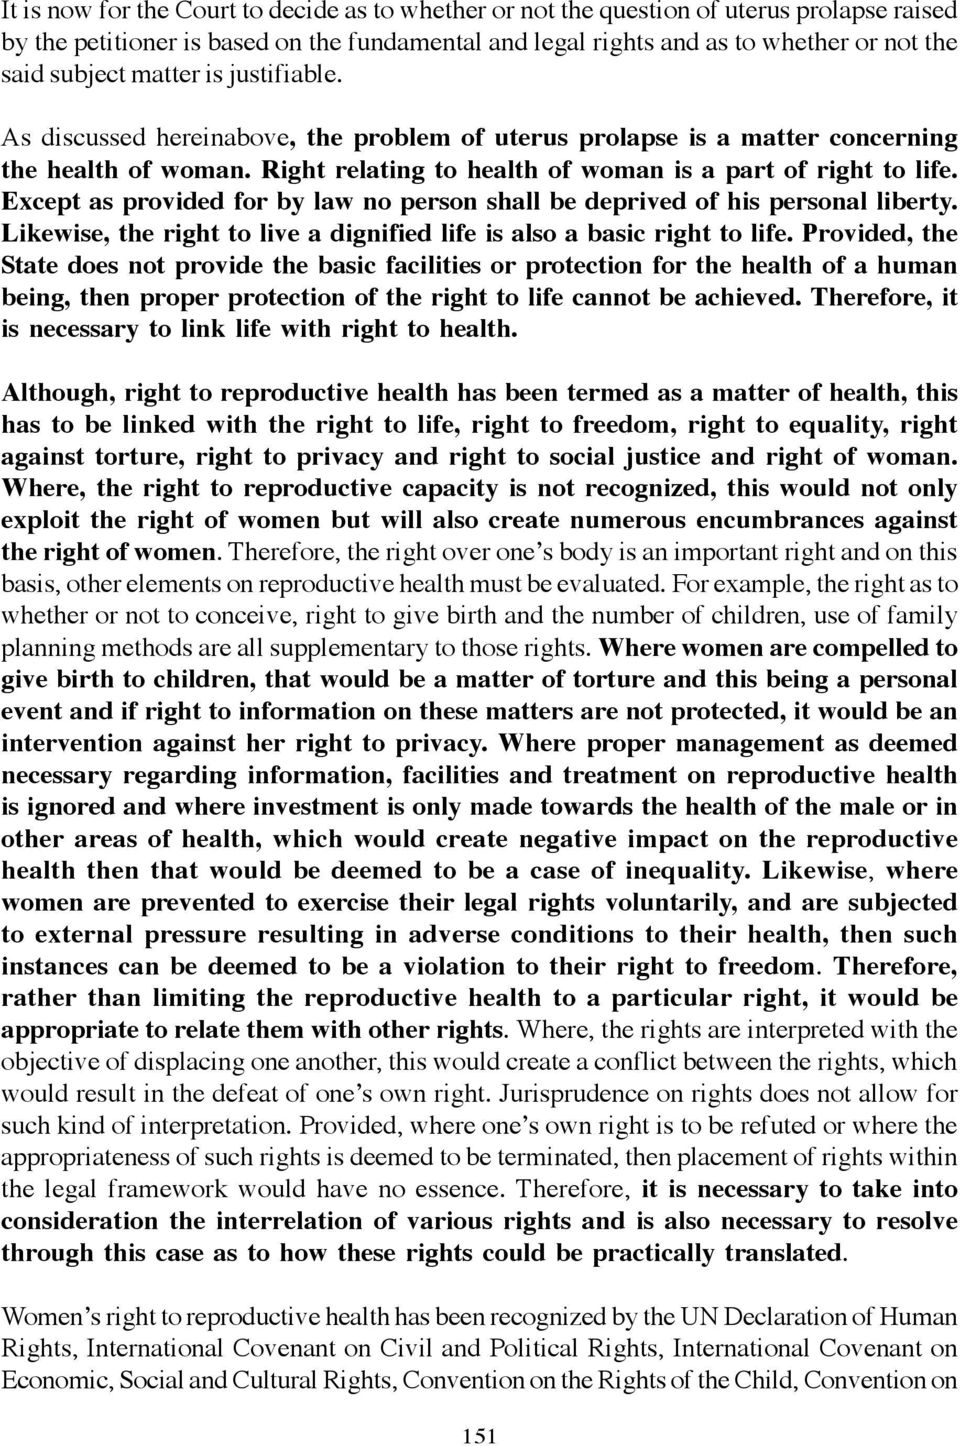 Except as provided for by law no person shall be deprived of his personal liberty. Likewise, the right to live a dignified life is also a basic right to life.